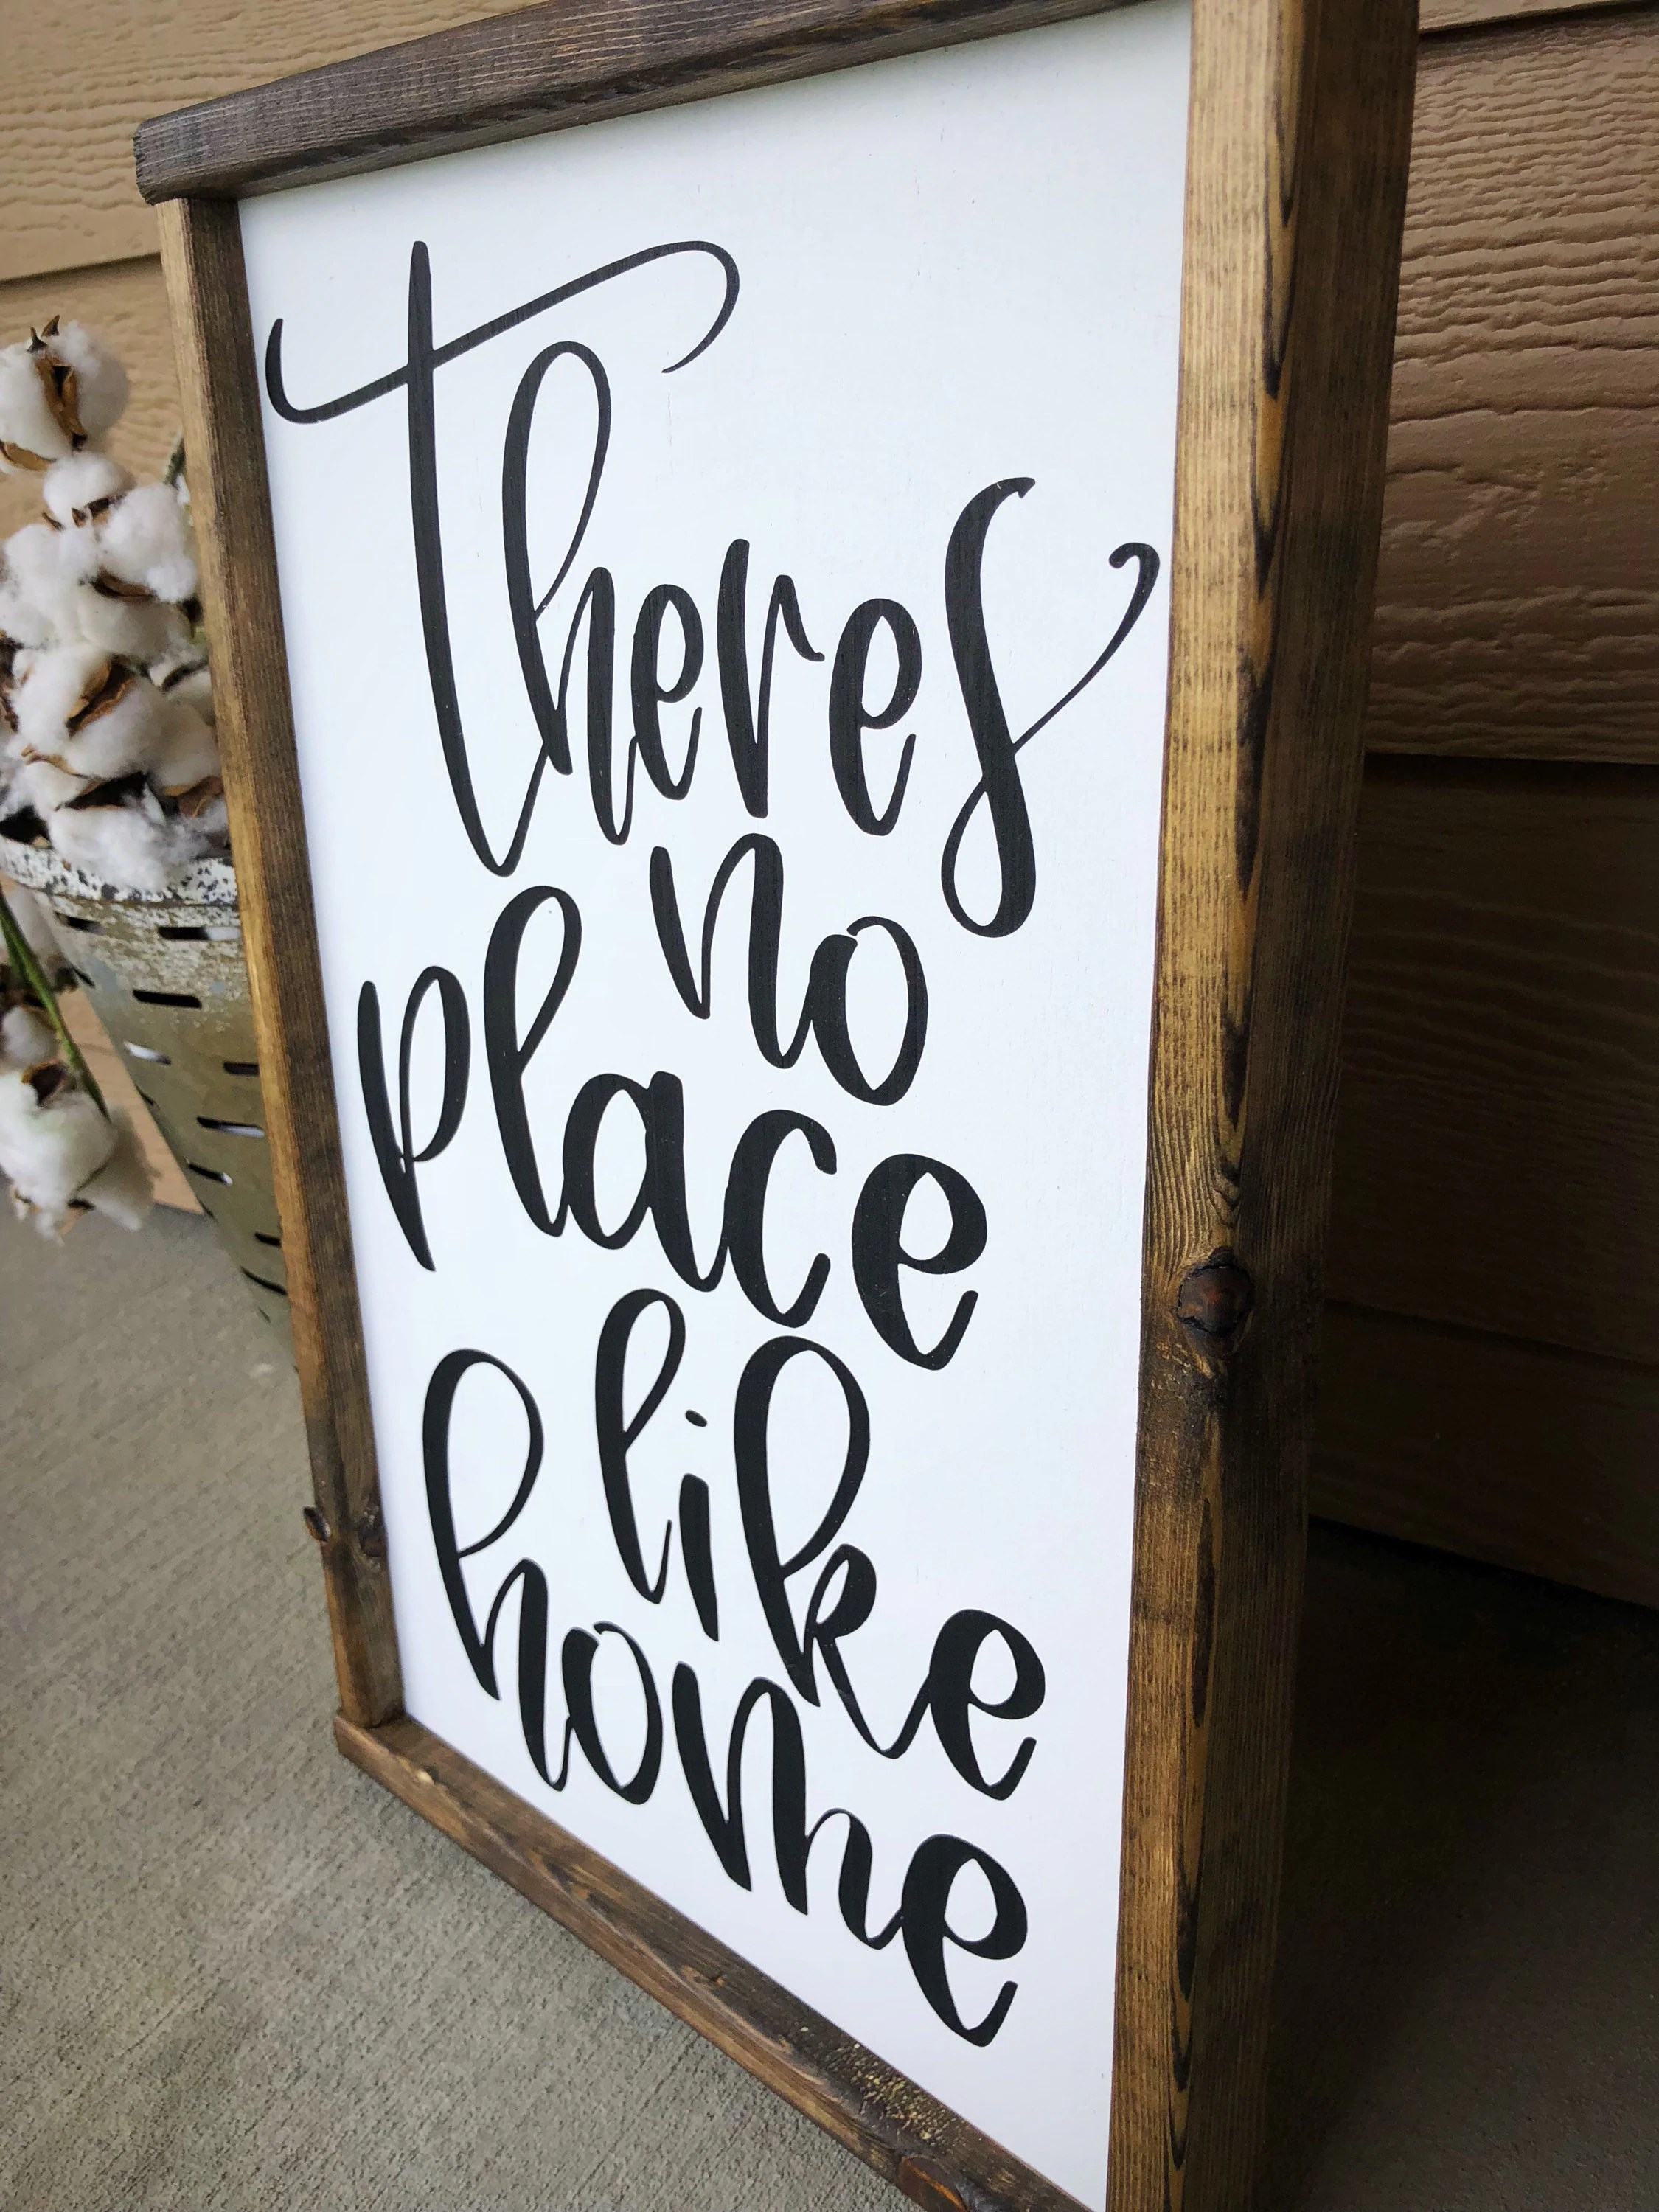 Signs With Quotes | Farmhouse Decor | Signs For Home ... on Home Wall Decor Signs id=99552